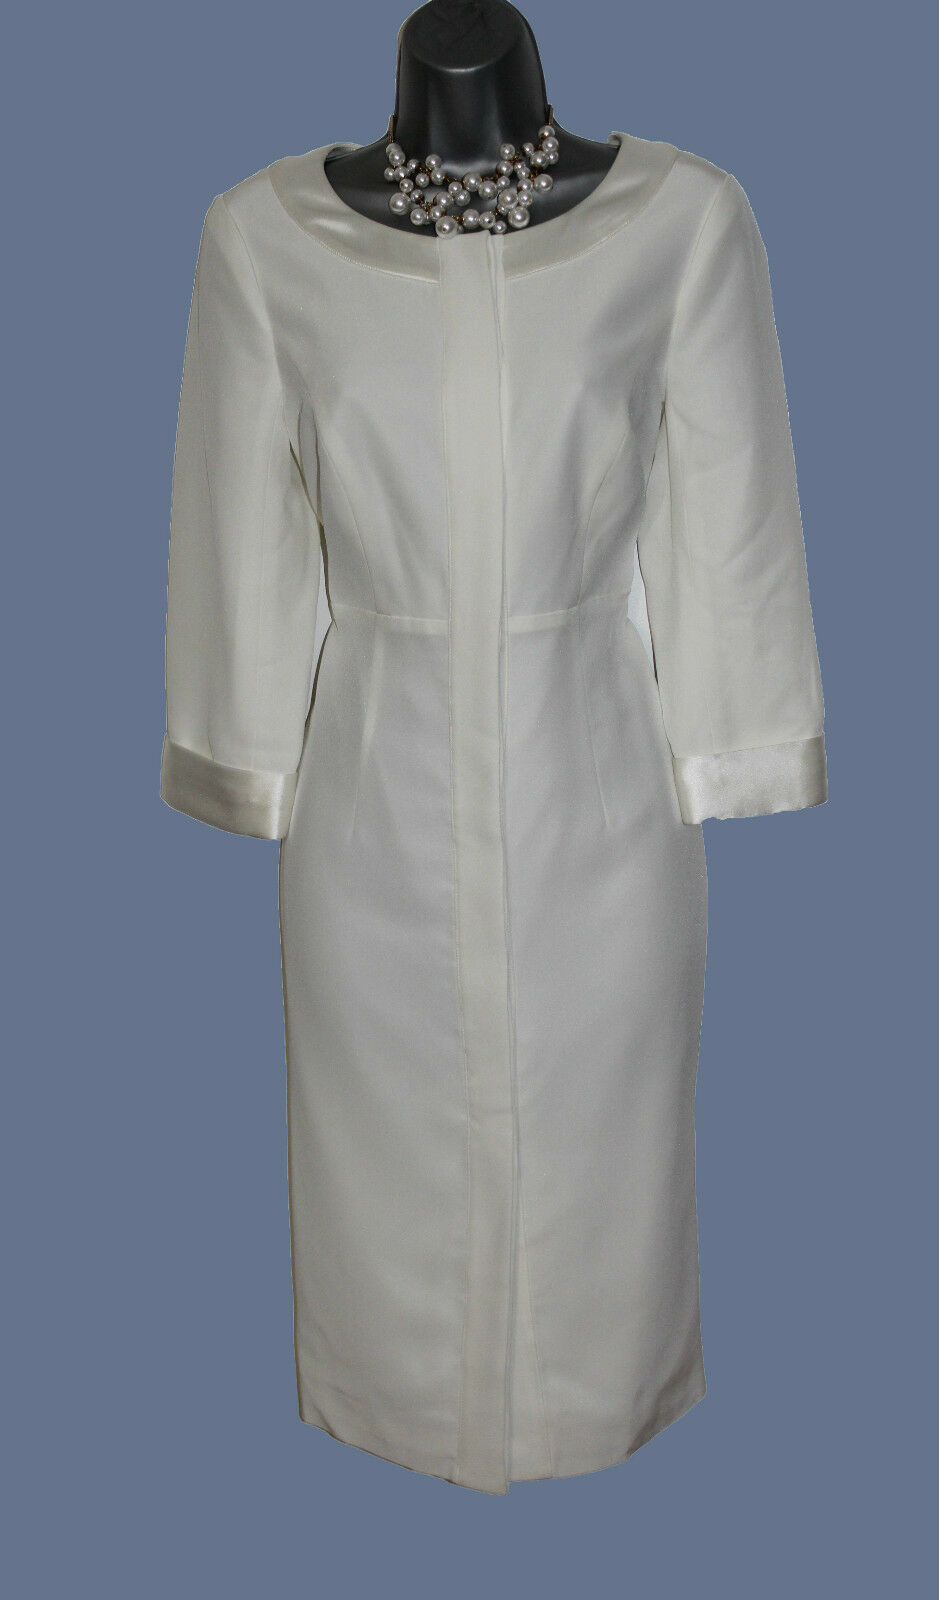 MONSOON Ivory Long Sleeve Two in One Dress Jacket 12 Wedding Bridal Evening